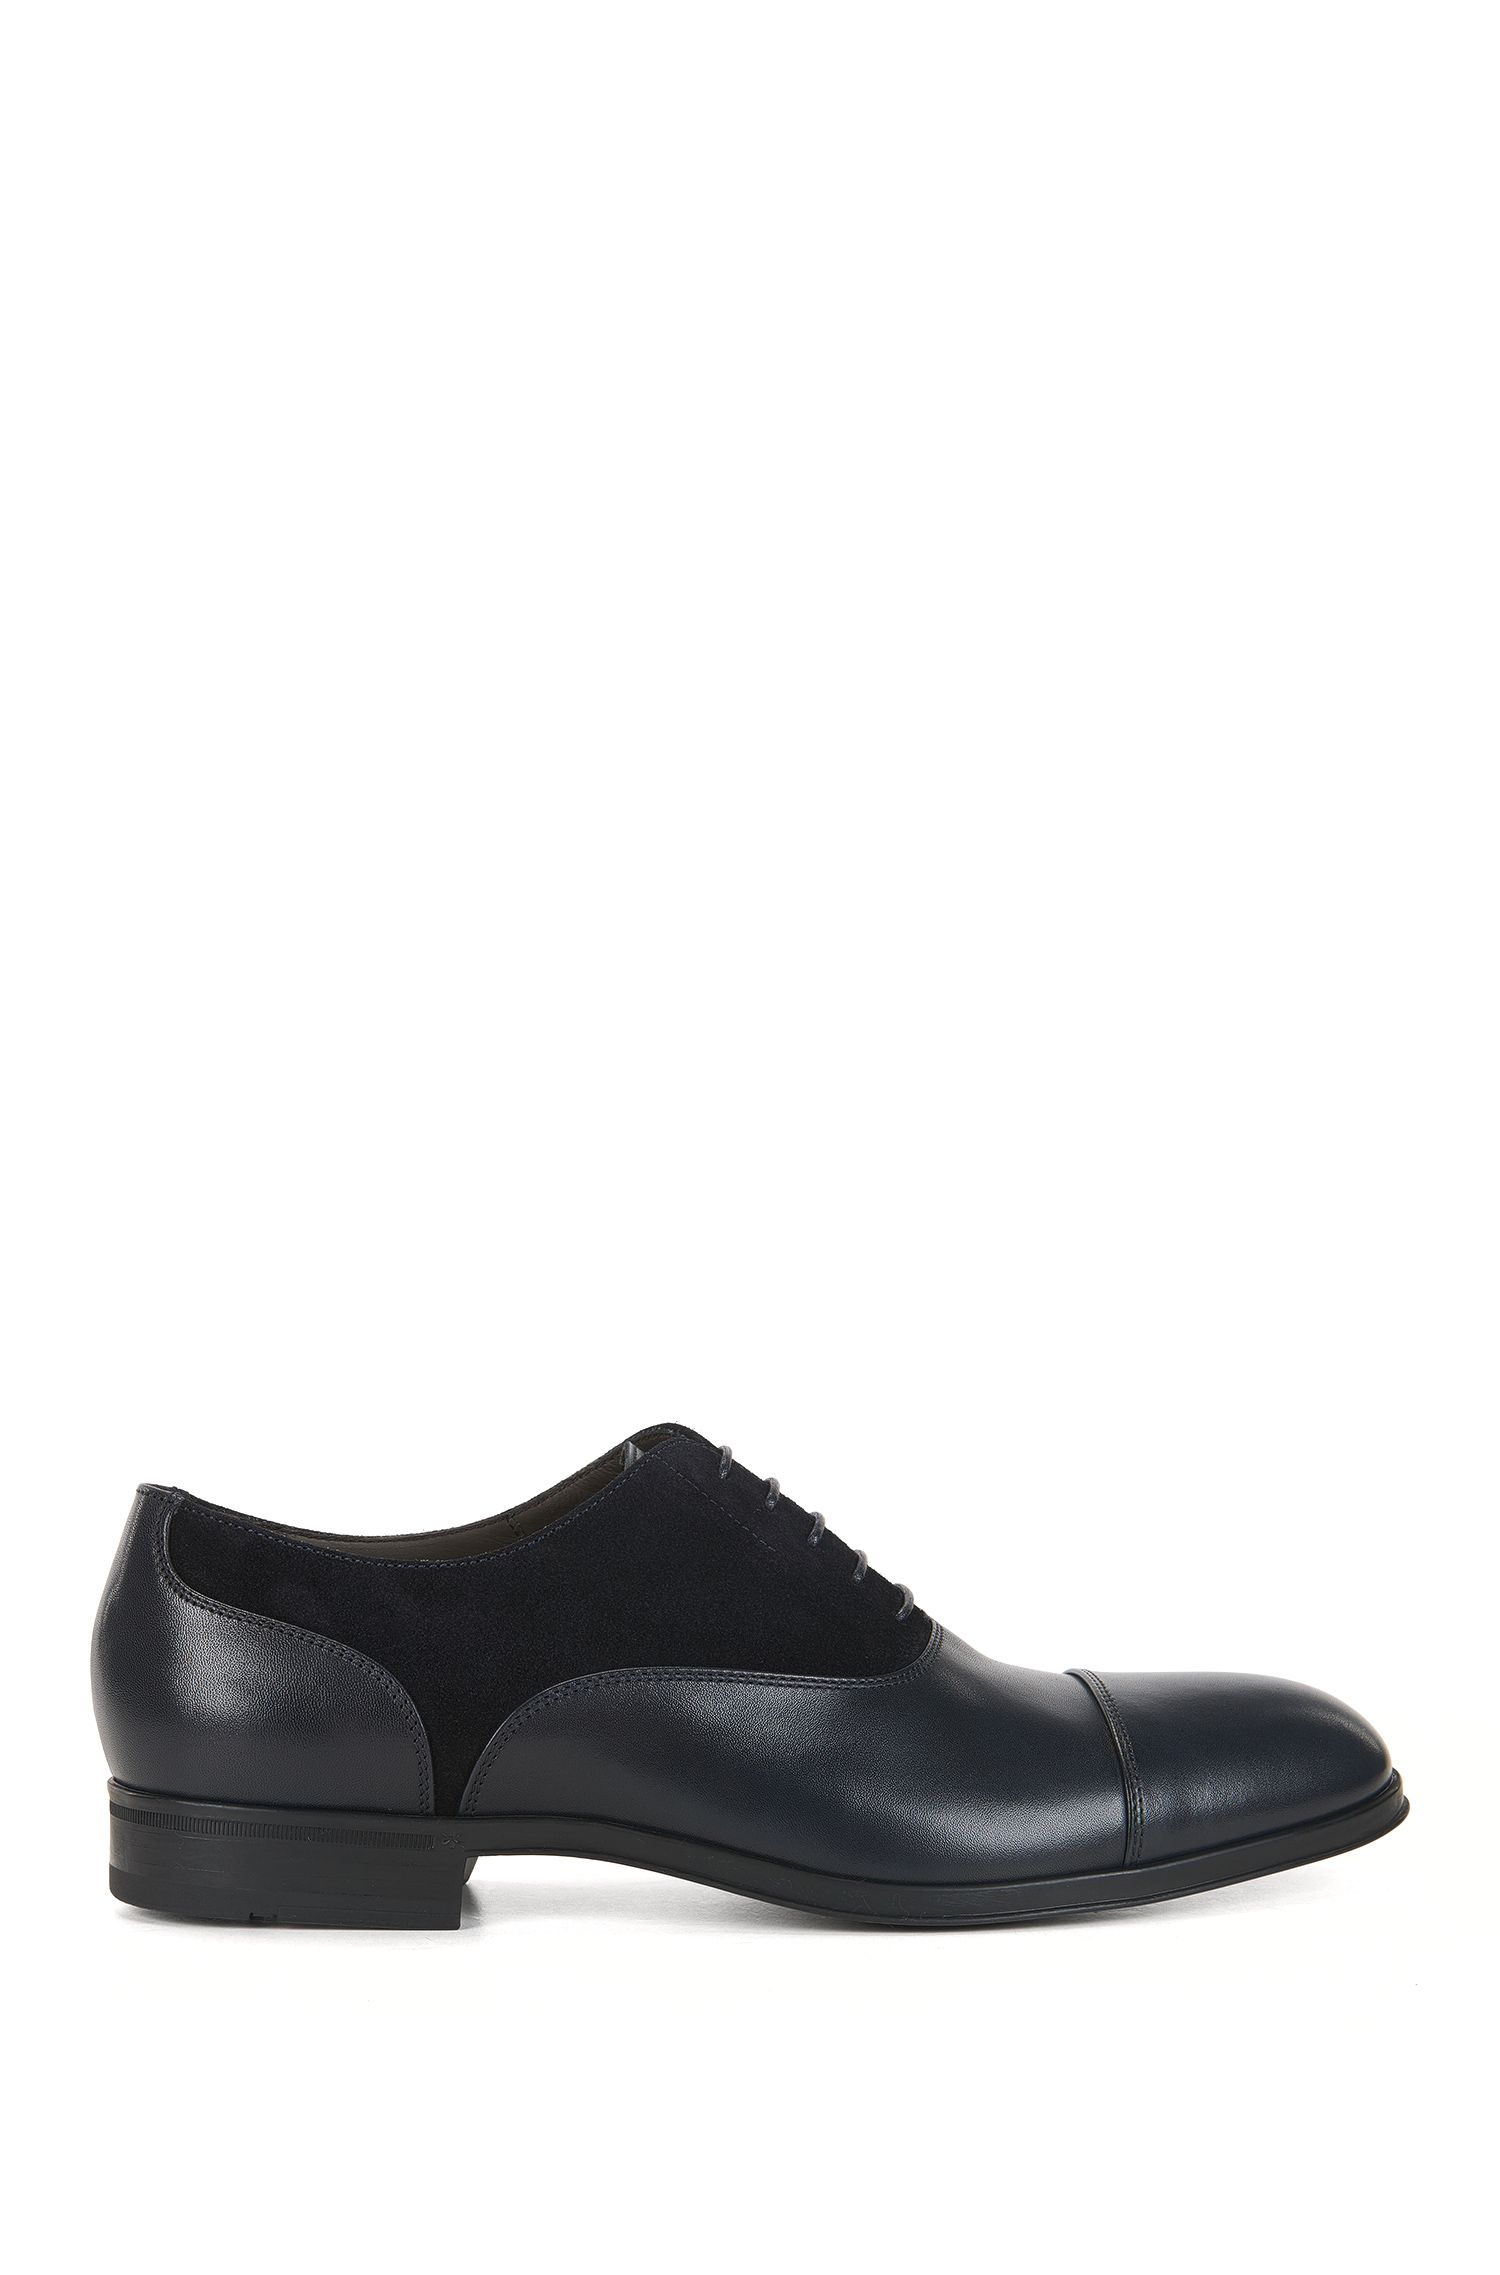 Suede & Leather Saddle Dress Shoe | Eton Oxfr Sdct